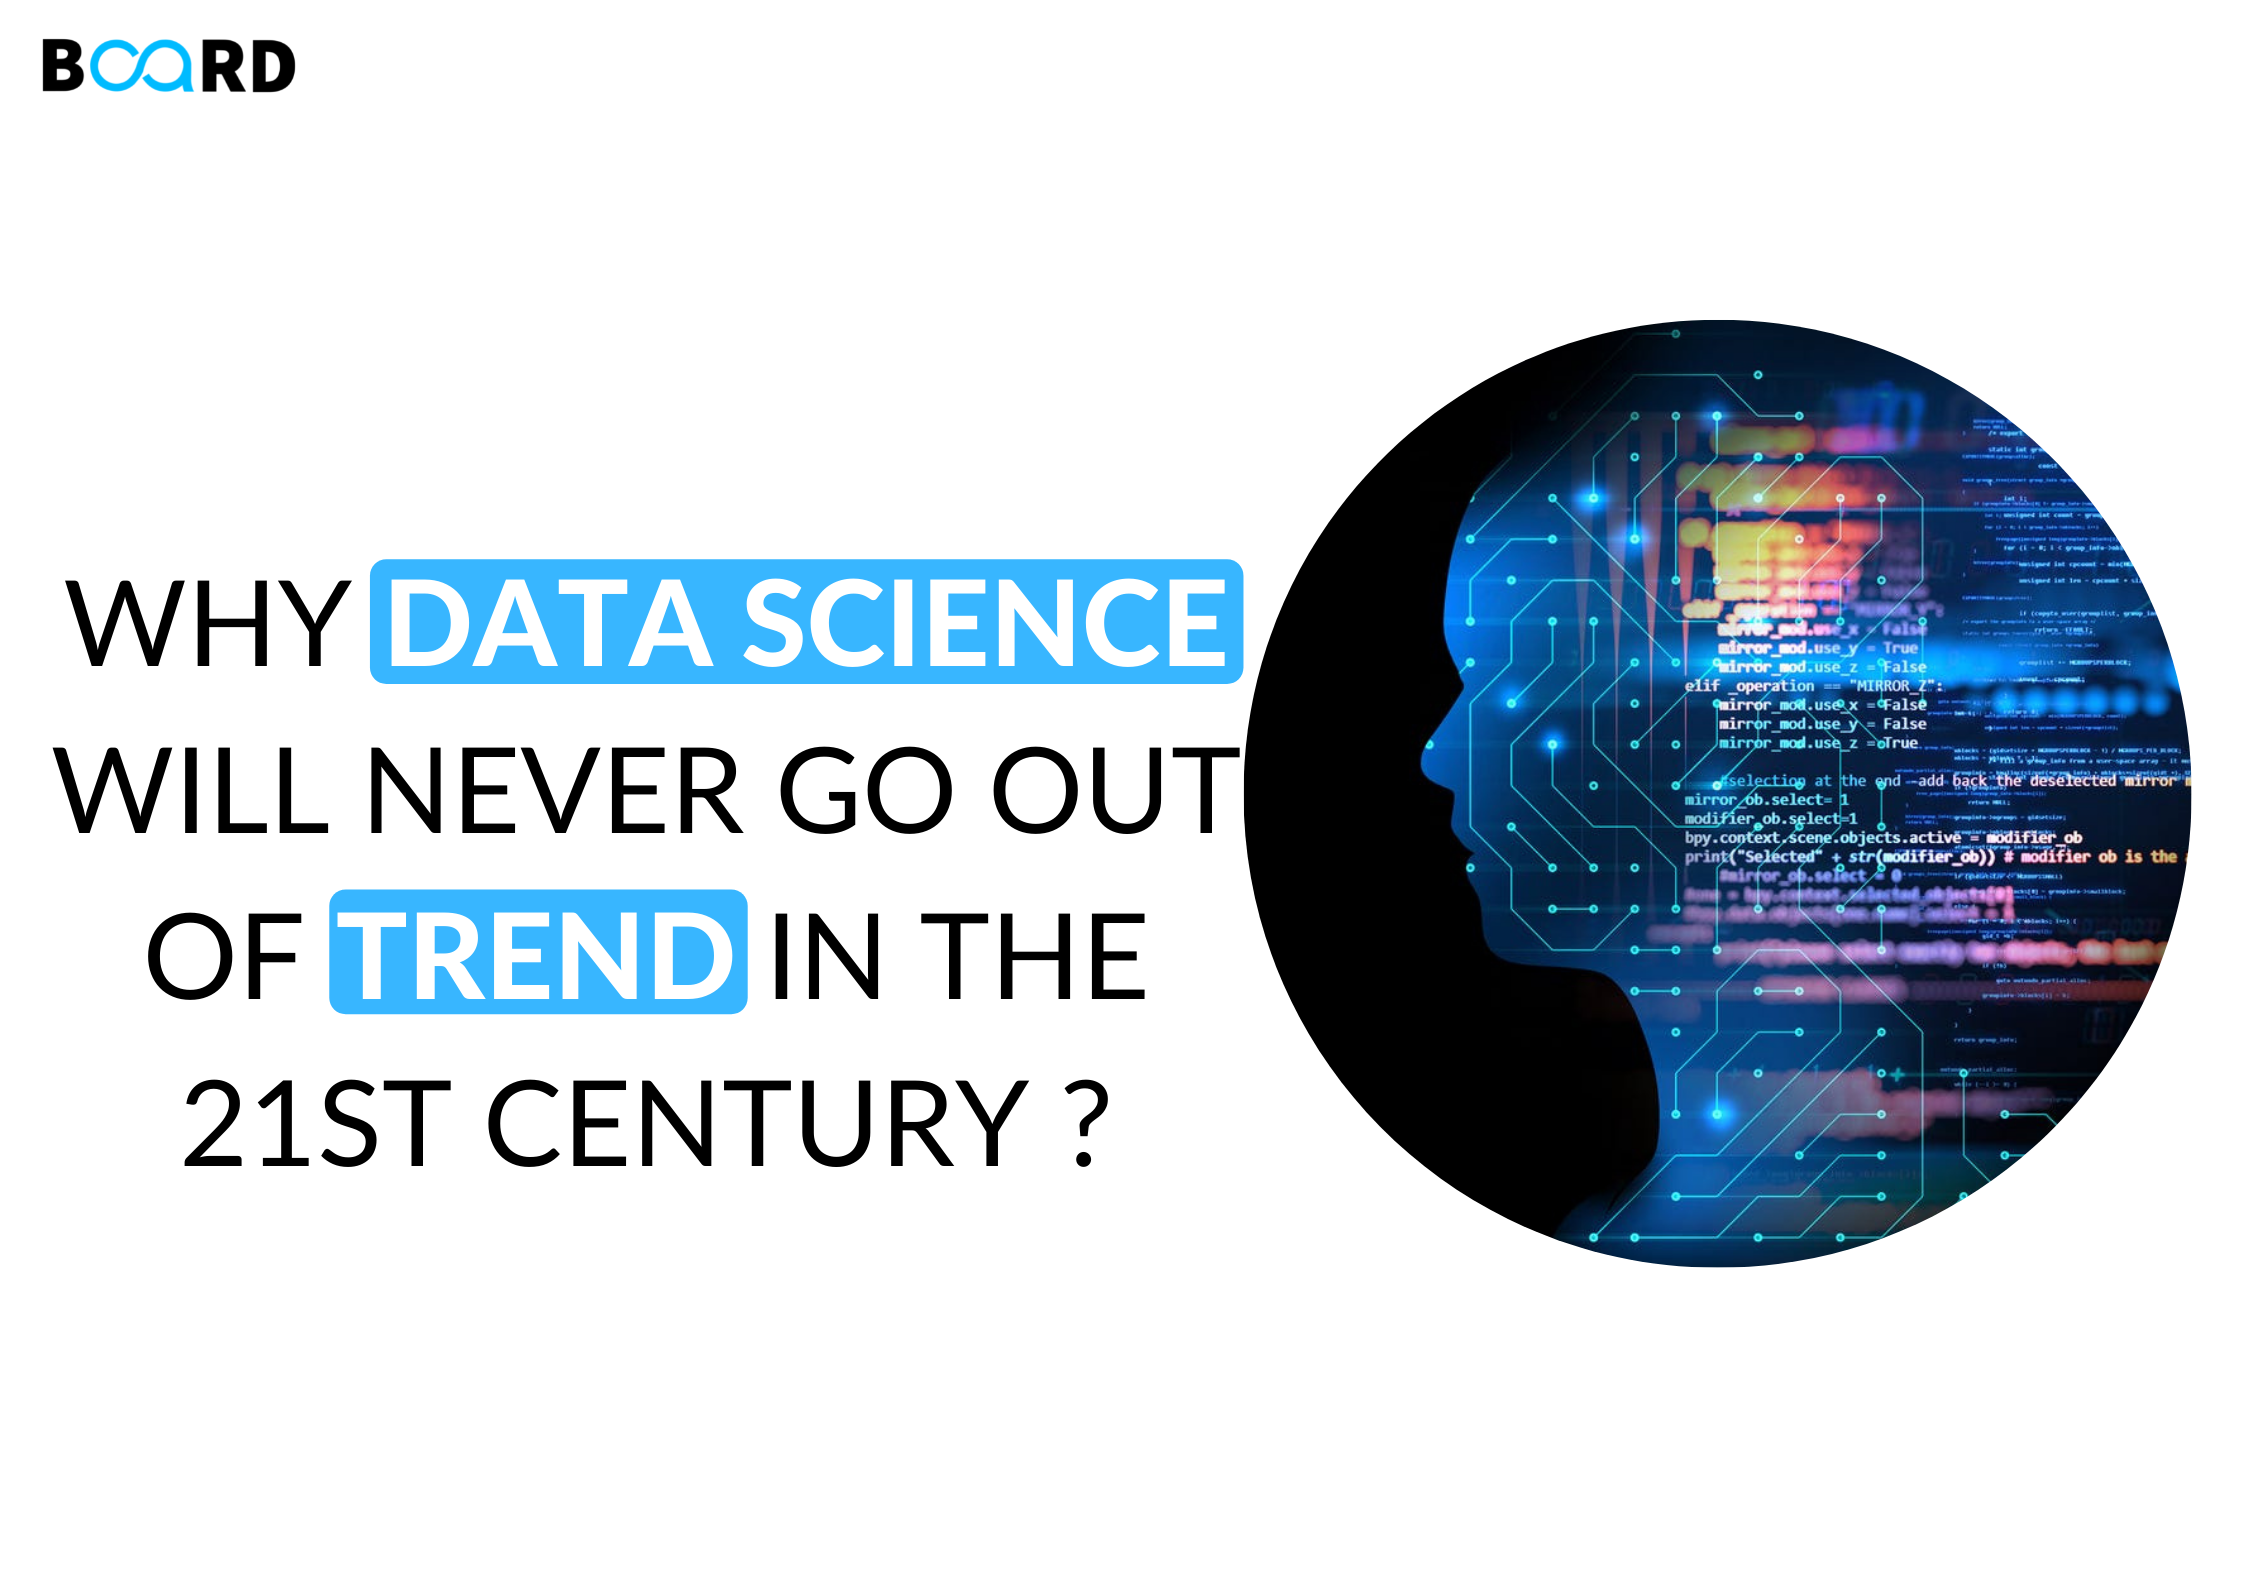 Why Data Science Will Never Go Out Of Trend In The 21st century